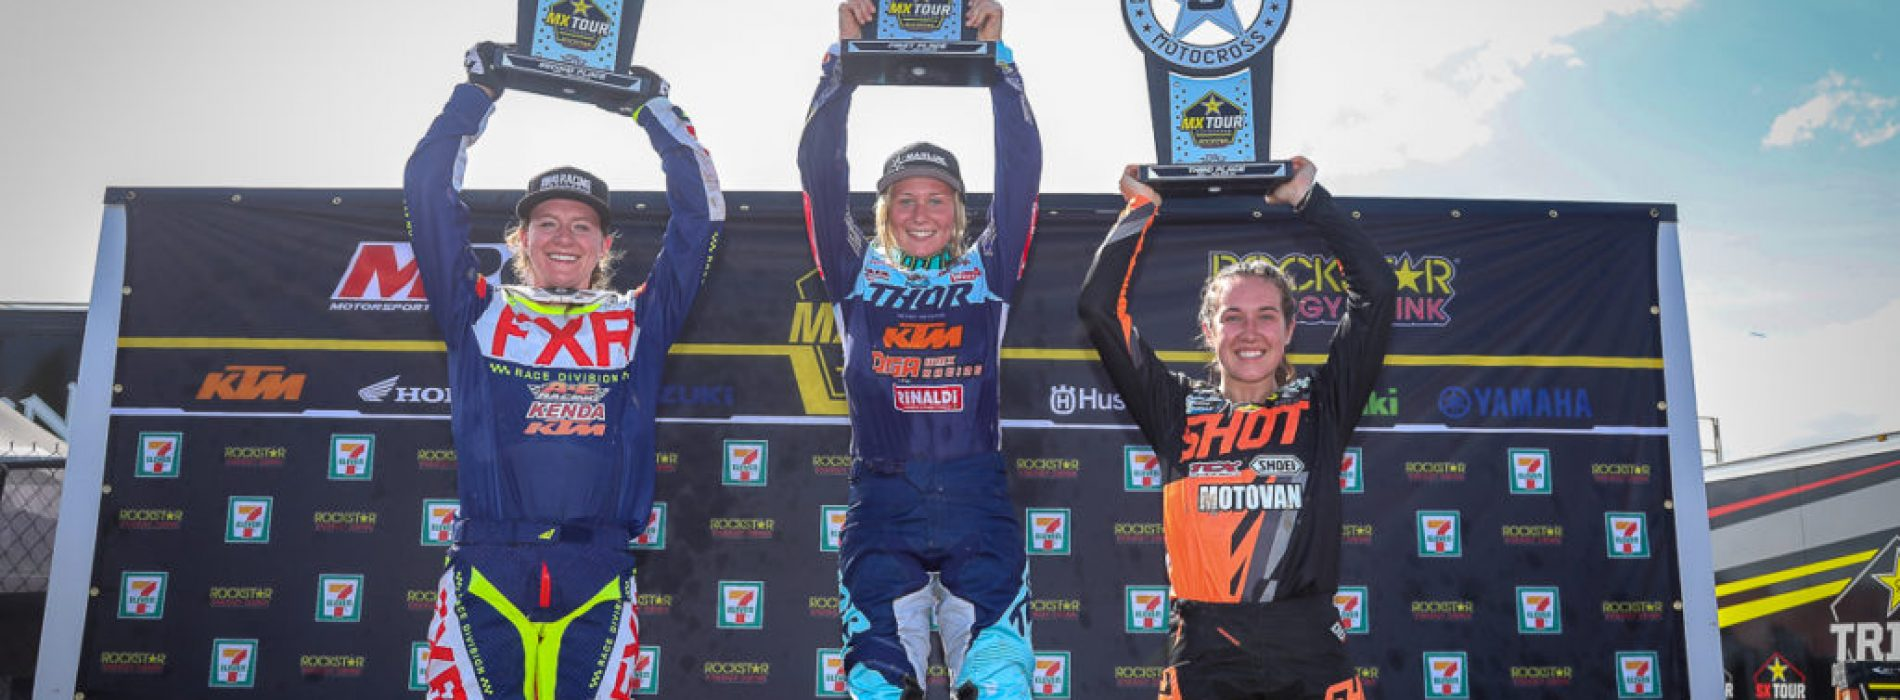 Avrie Berry- racing 3 WMX Championships in 2 continents- winning 2 so far- how does she do it?